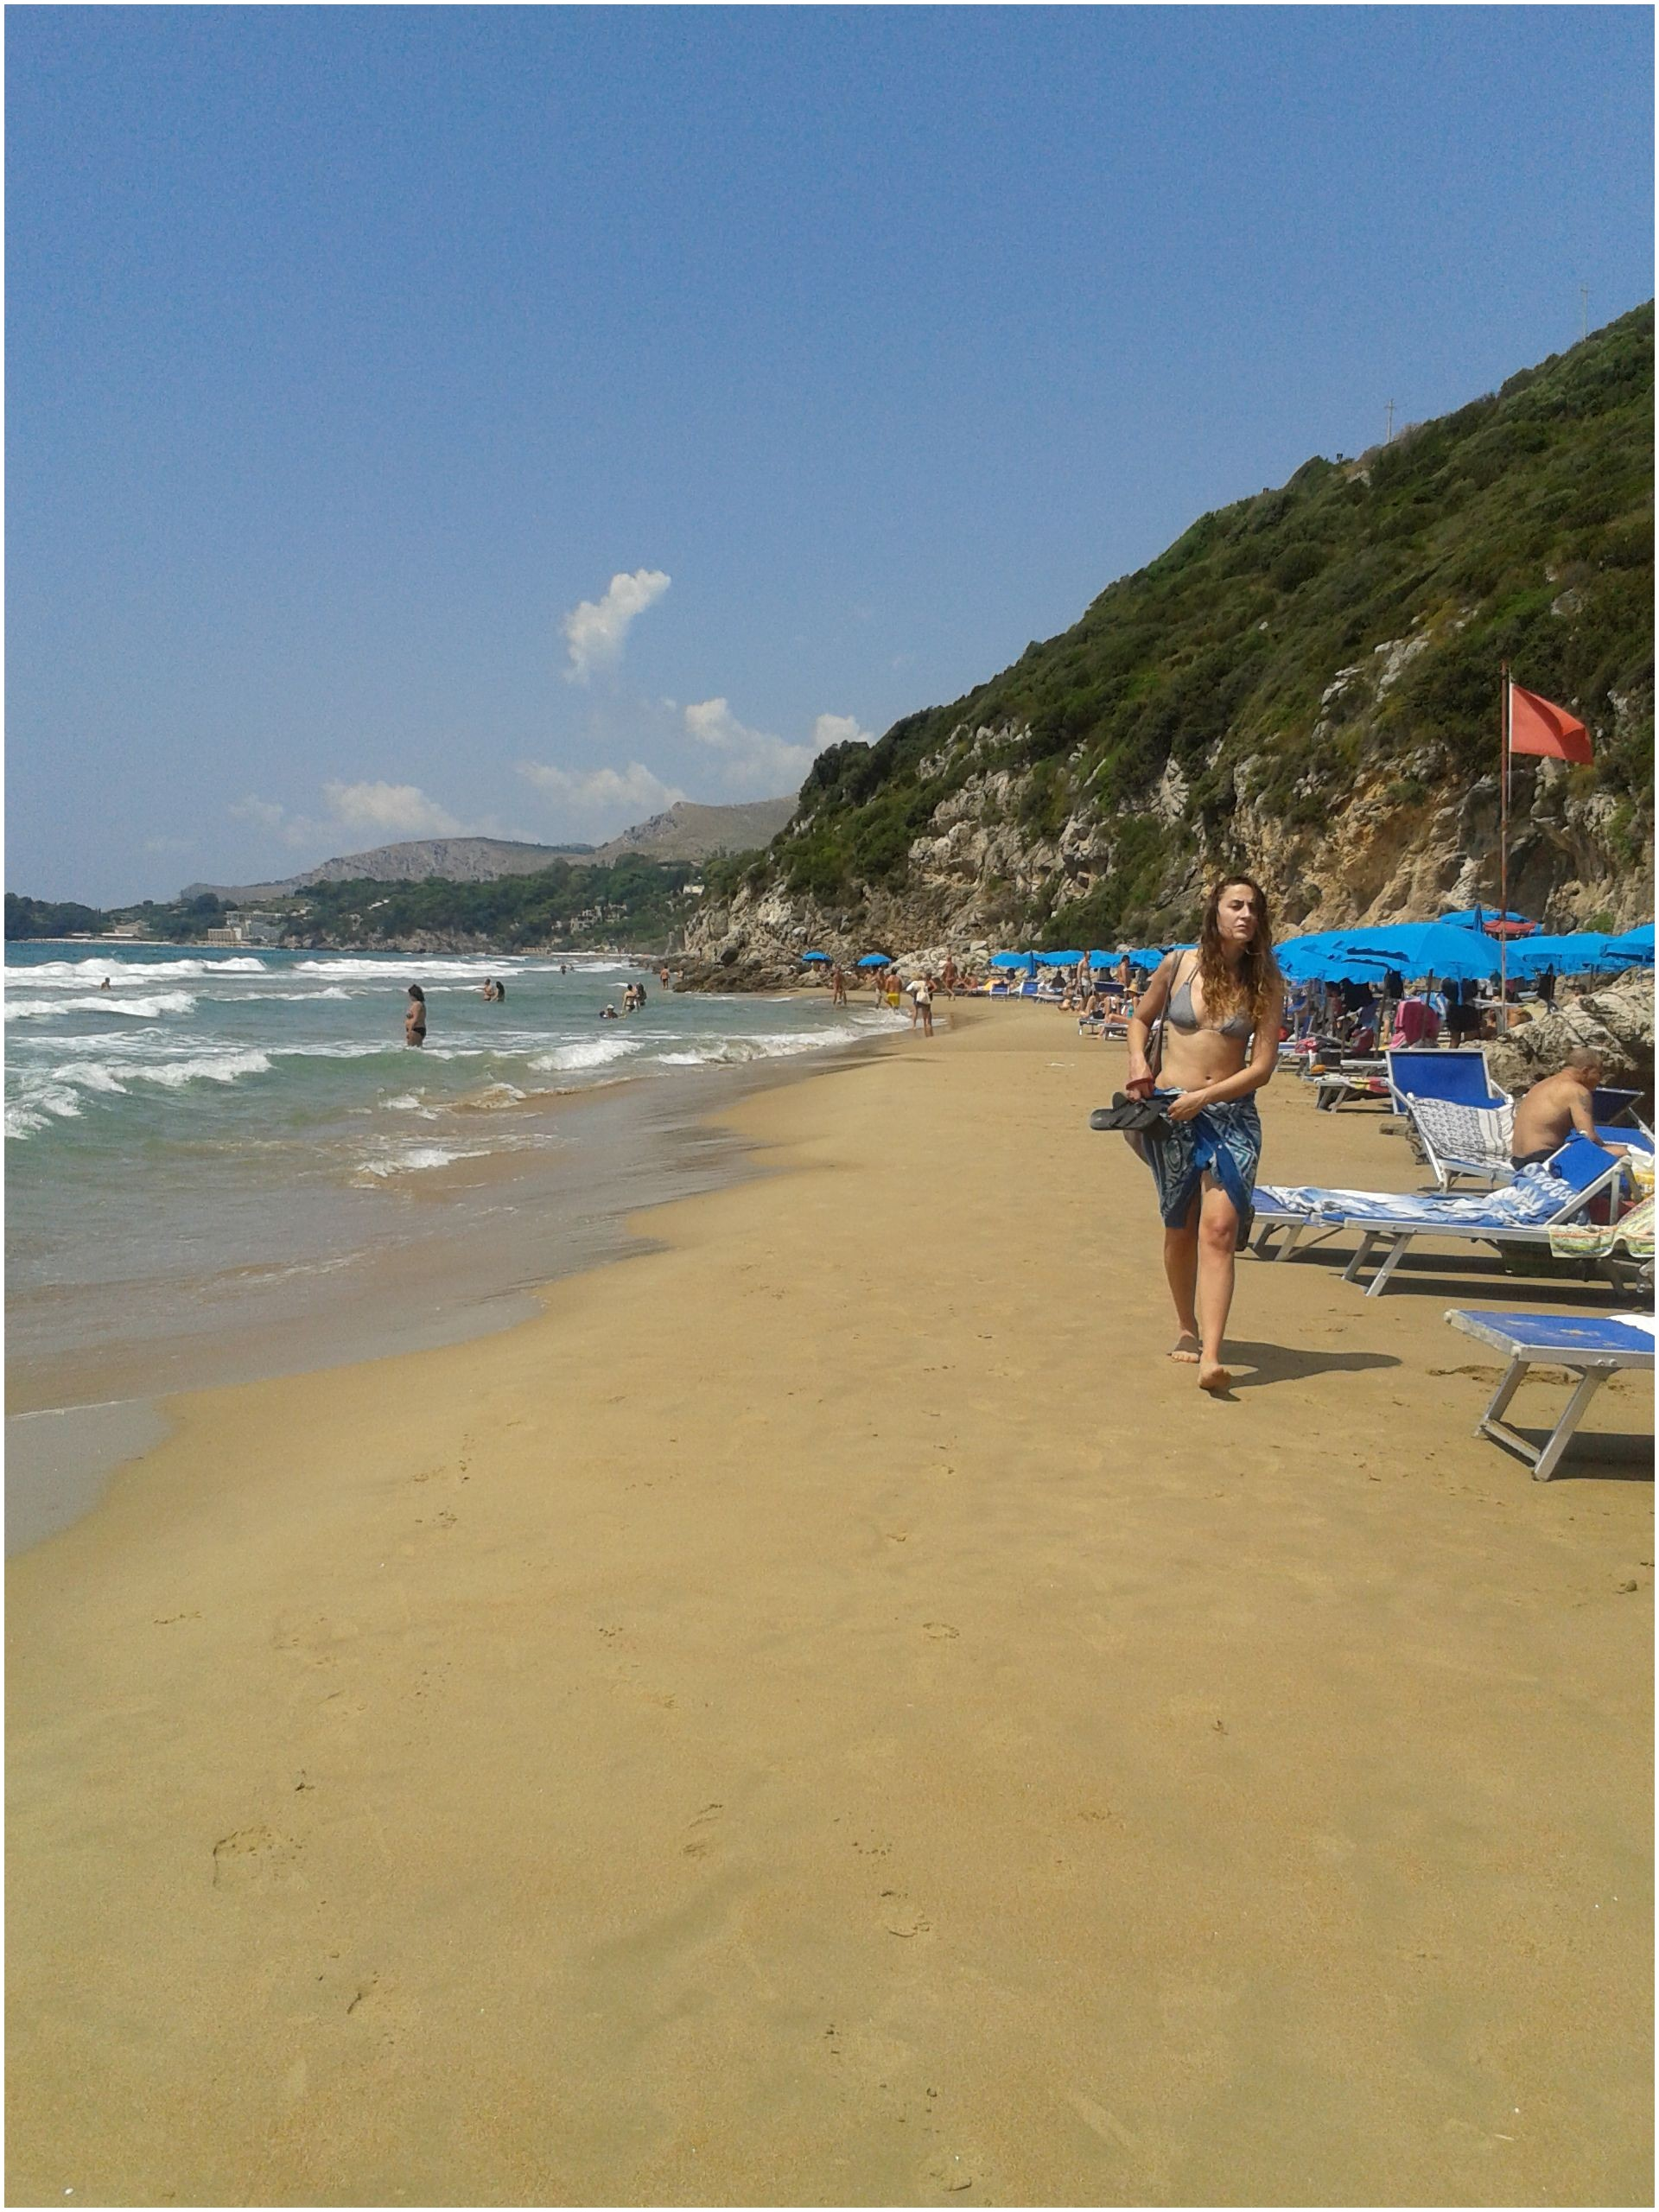 Le Scissure Beach Gaeta Italy spent many days on these beaches